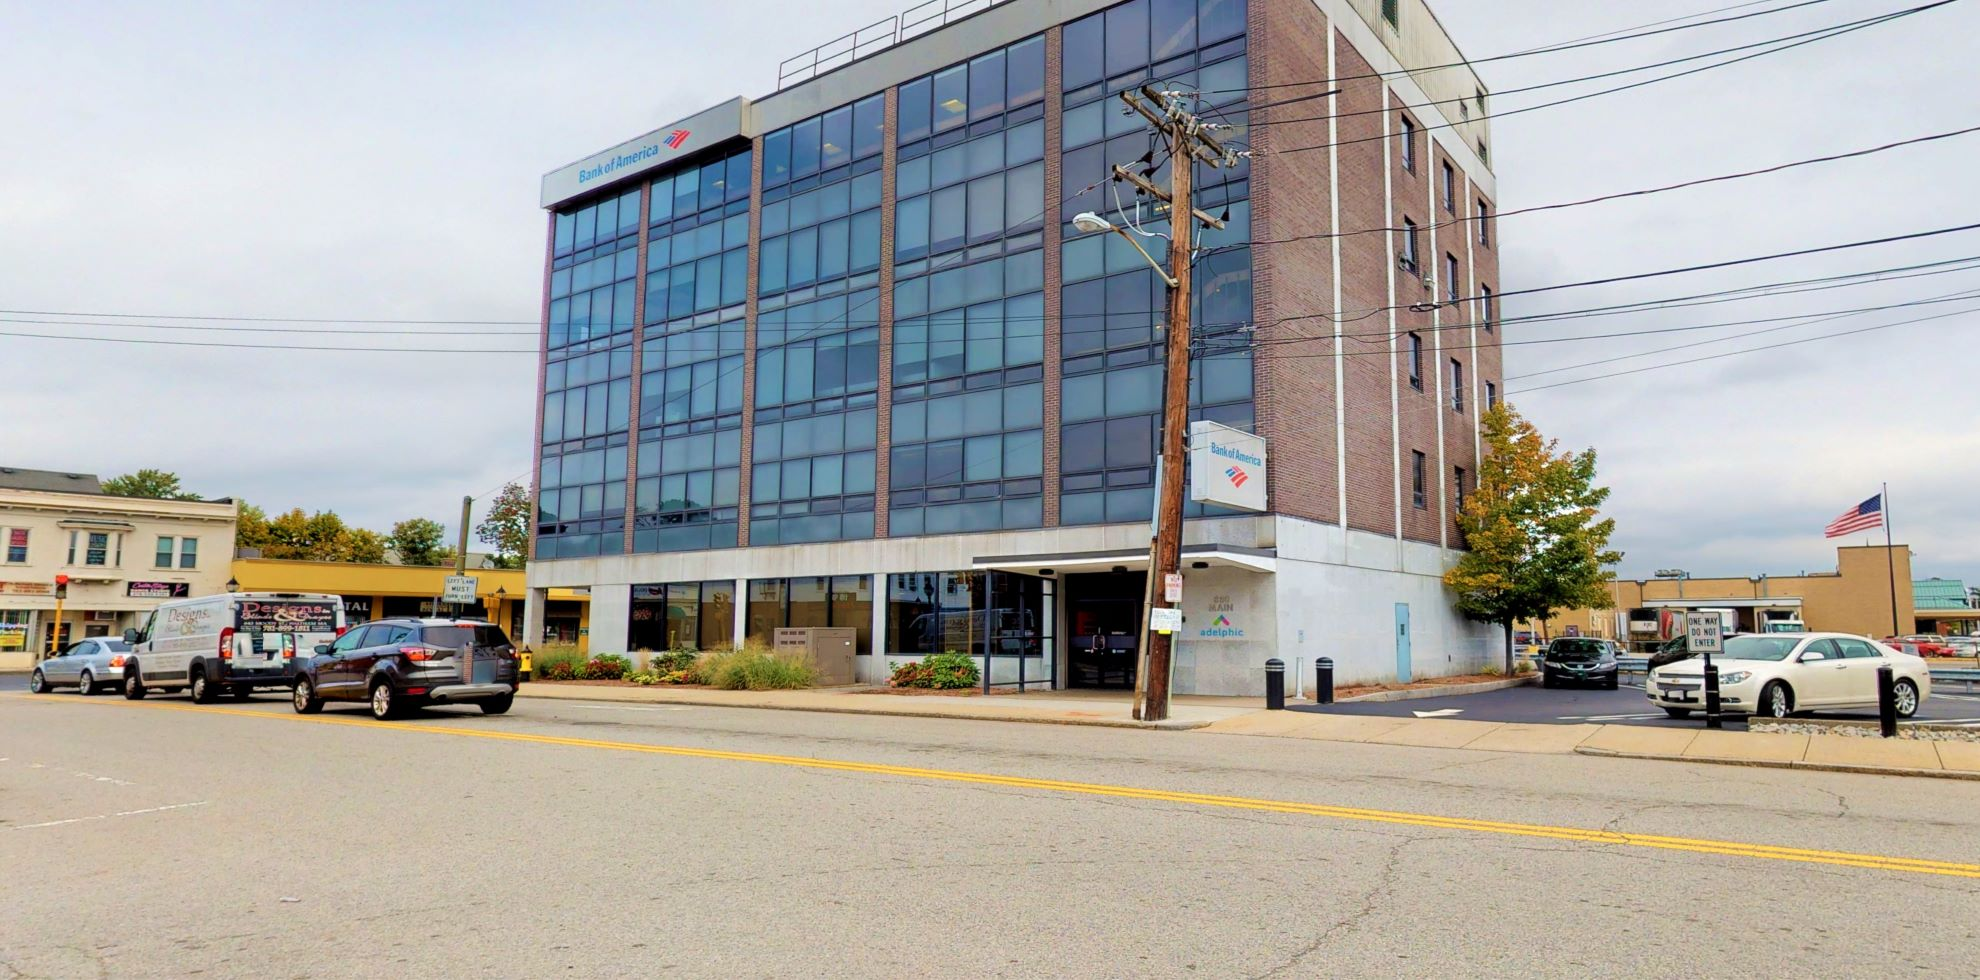 Bank of America financial center with drive-thru ATM | 880 Main St, Waltham, MA 02451